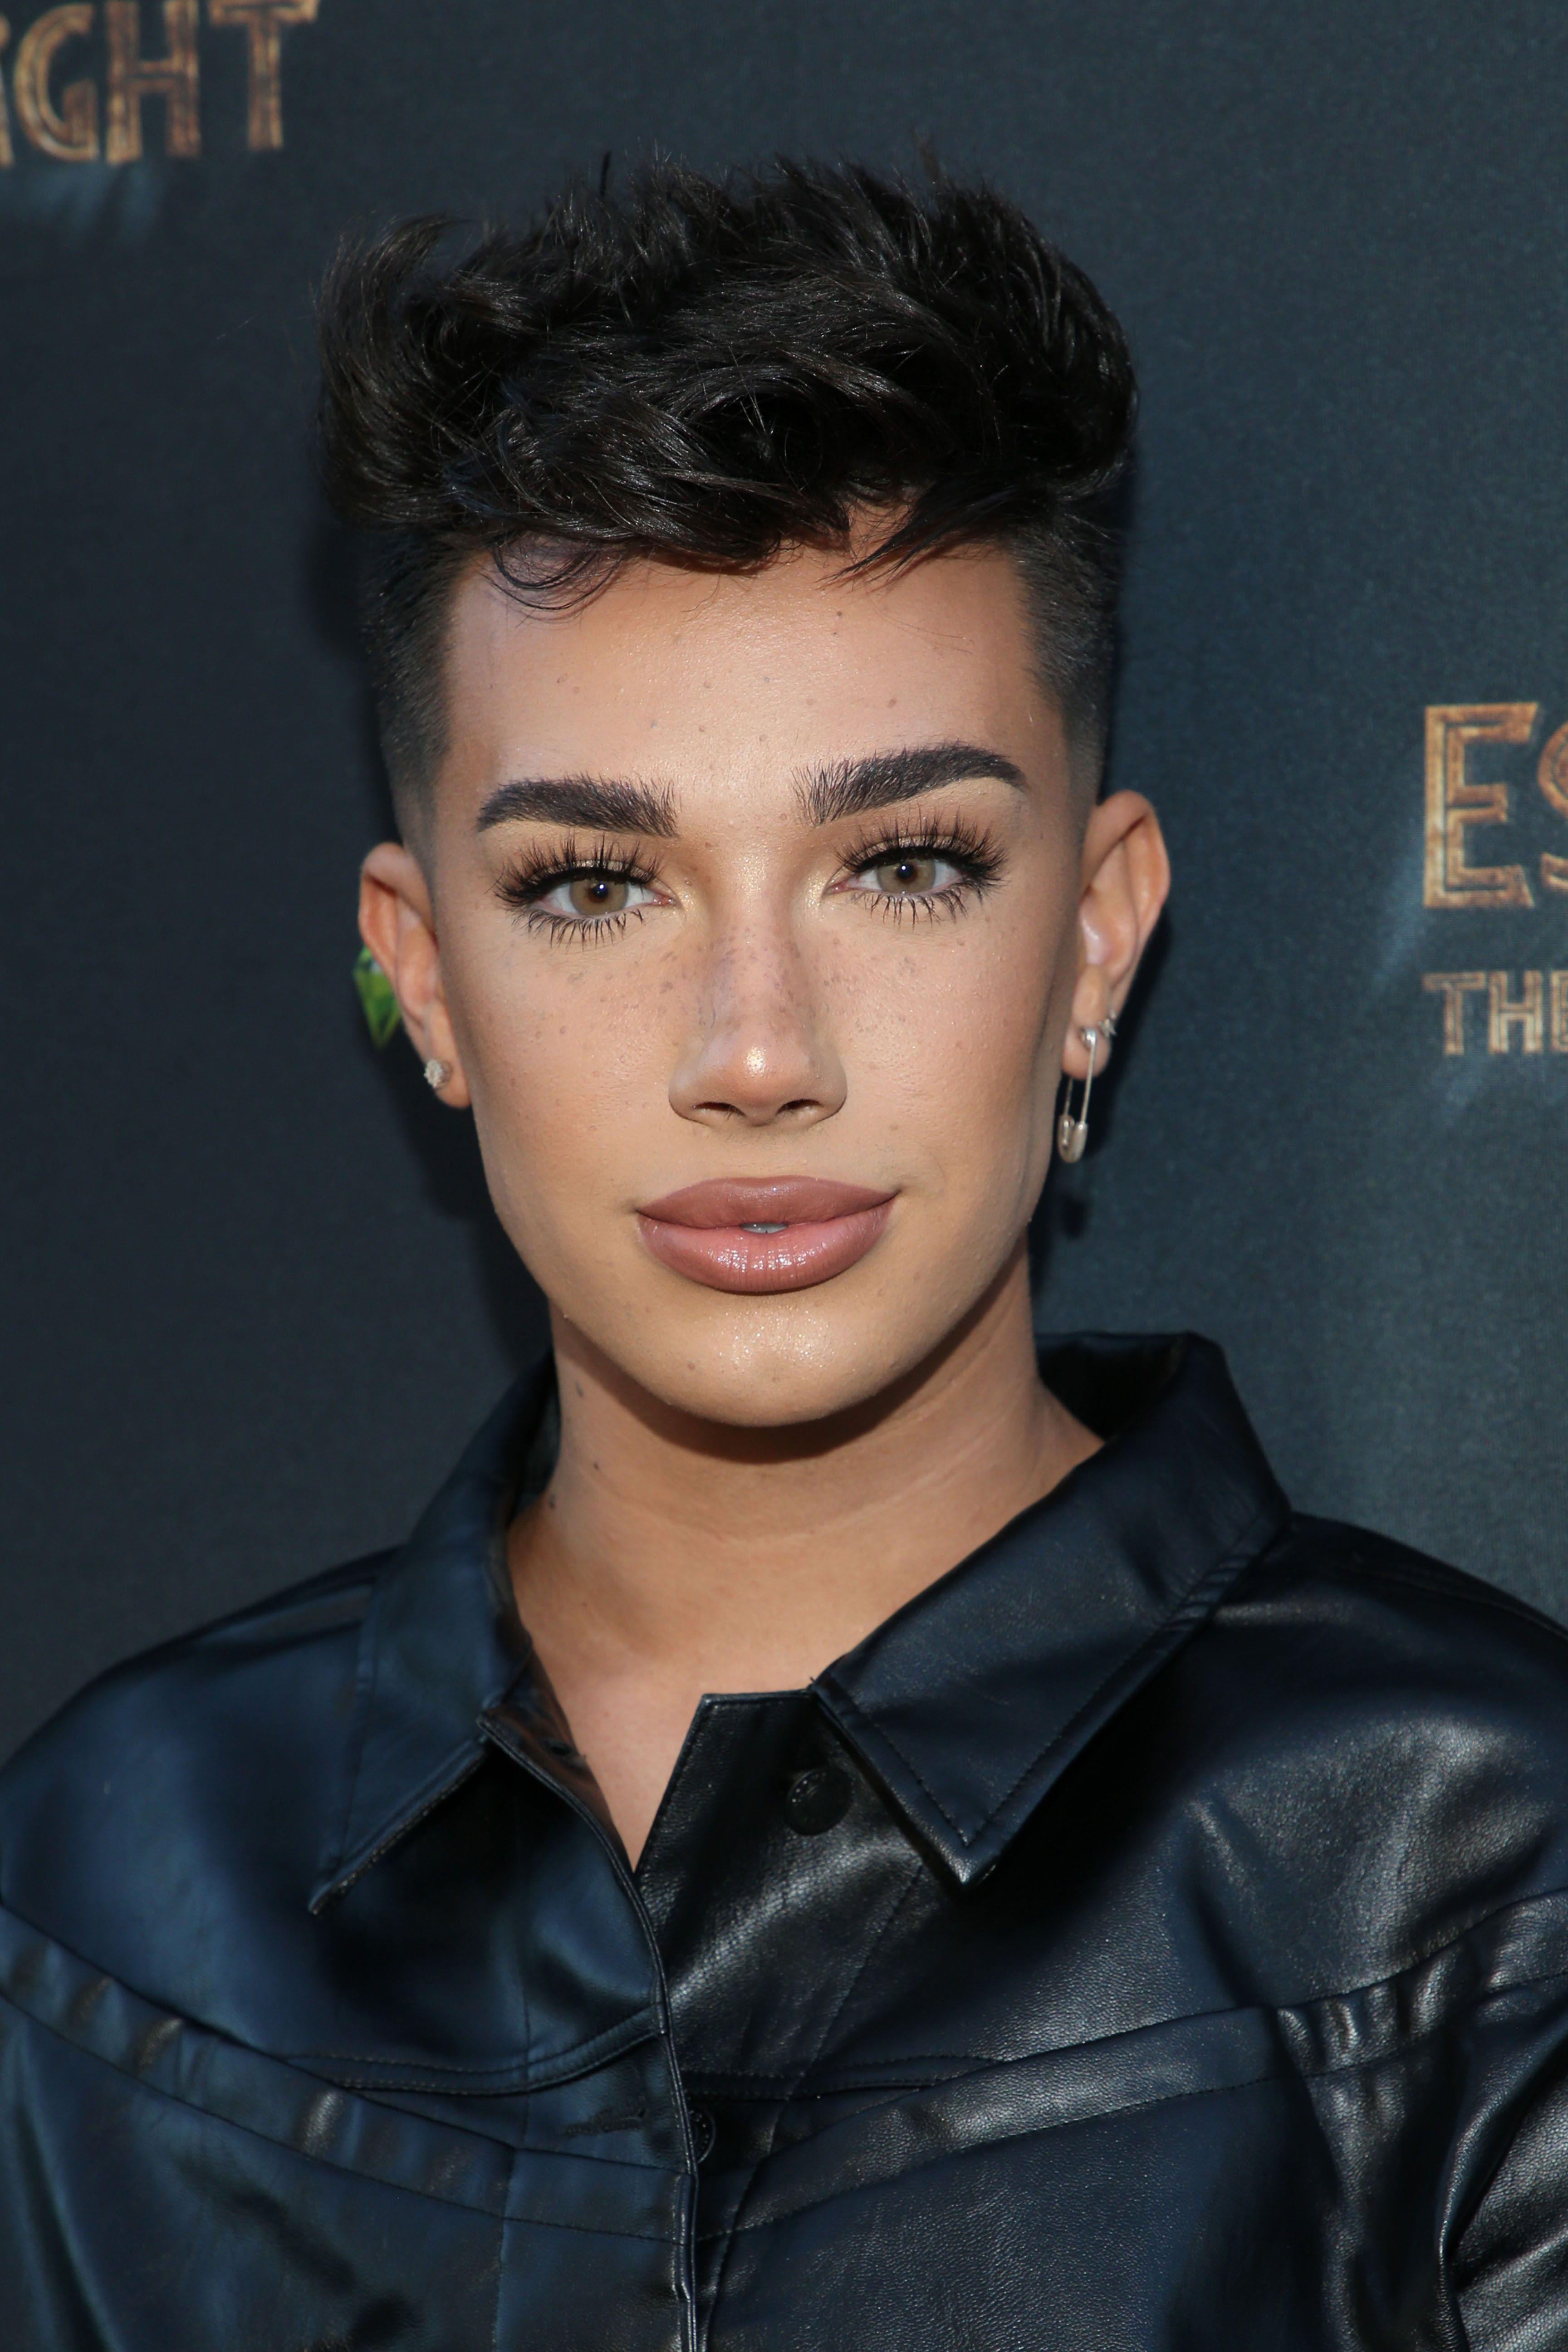 James Charles leaked his own nudes after his account was hacked